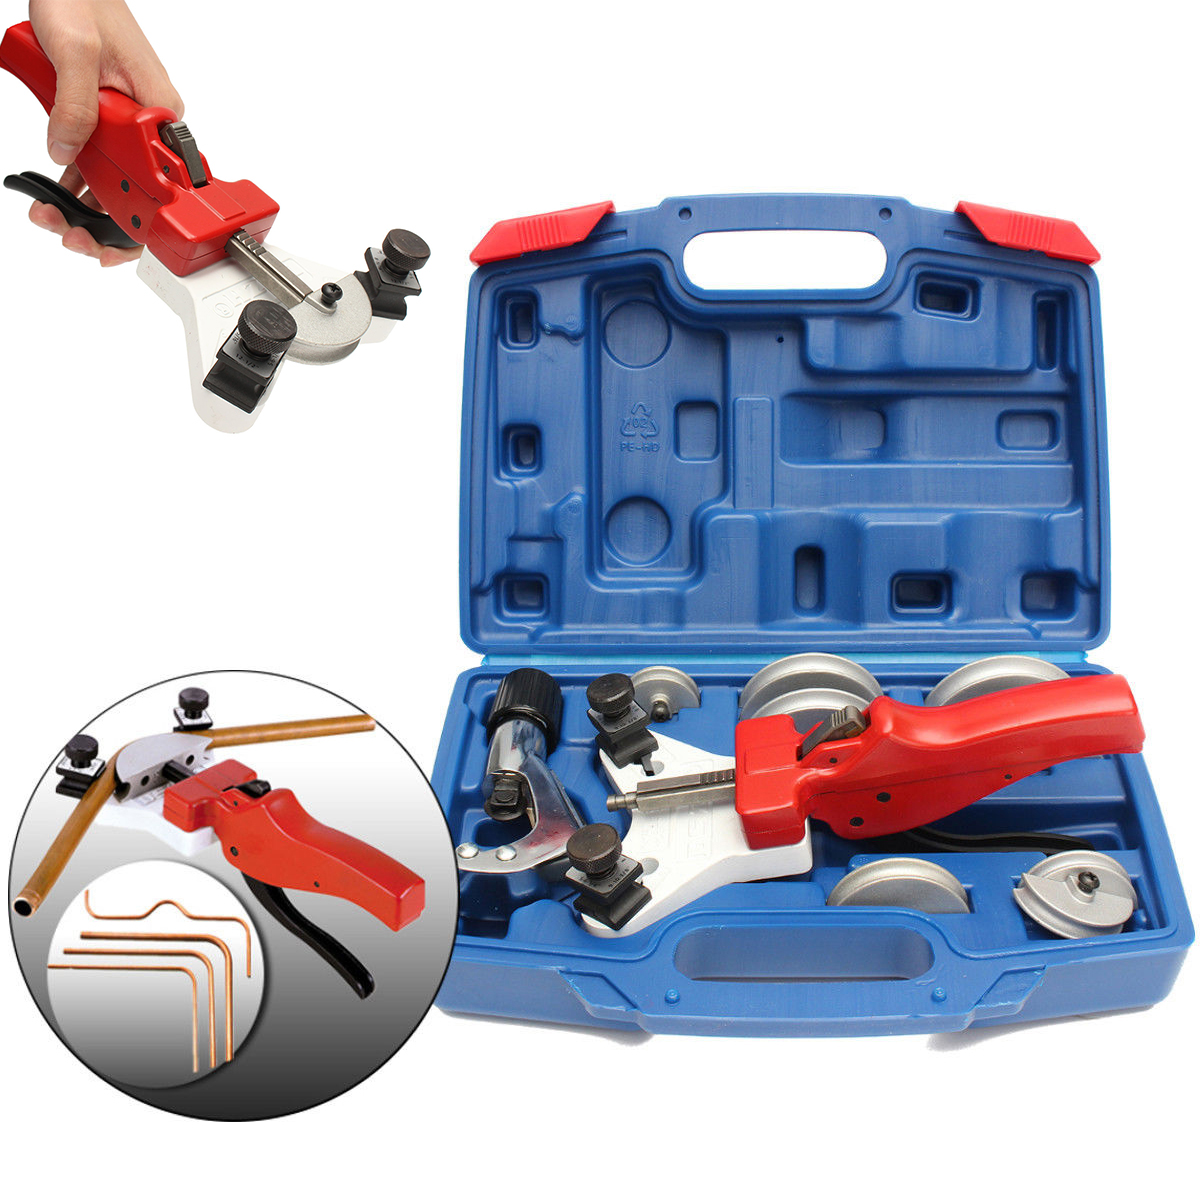 1 Set 15-22mm Manual Tube Bender Heavy Duty Steel Copper Pipe Bending Machine Tool with Tube Cutter heavy bullet head bobbin holder with ceramic tube tip protecting lines brass copper material